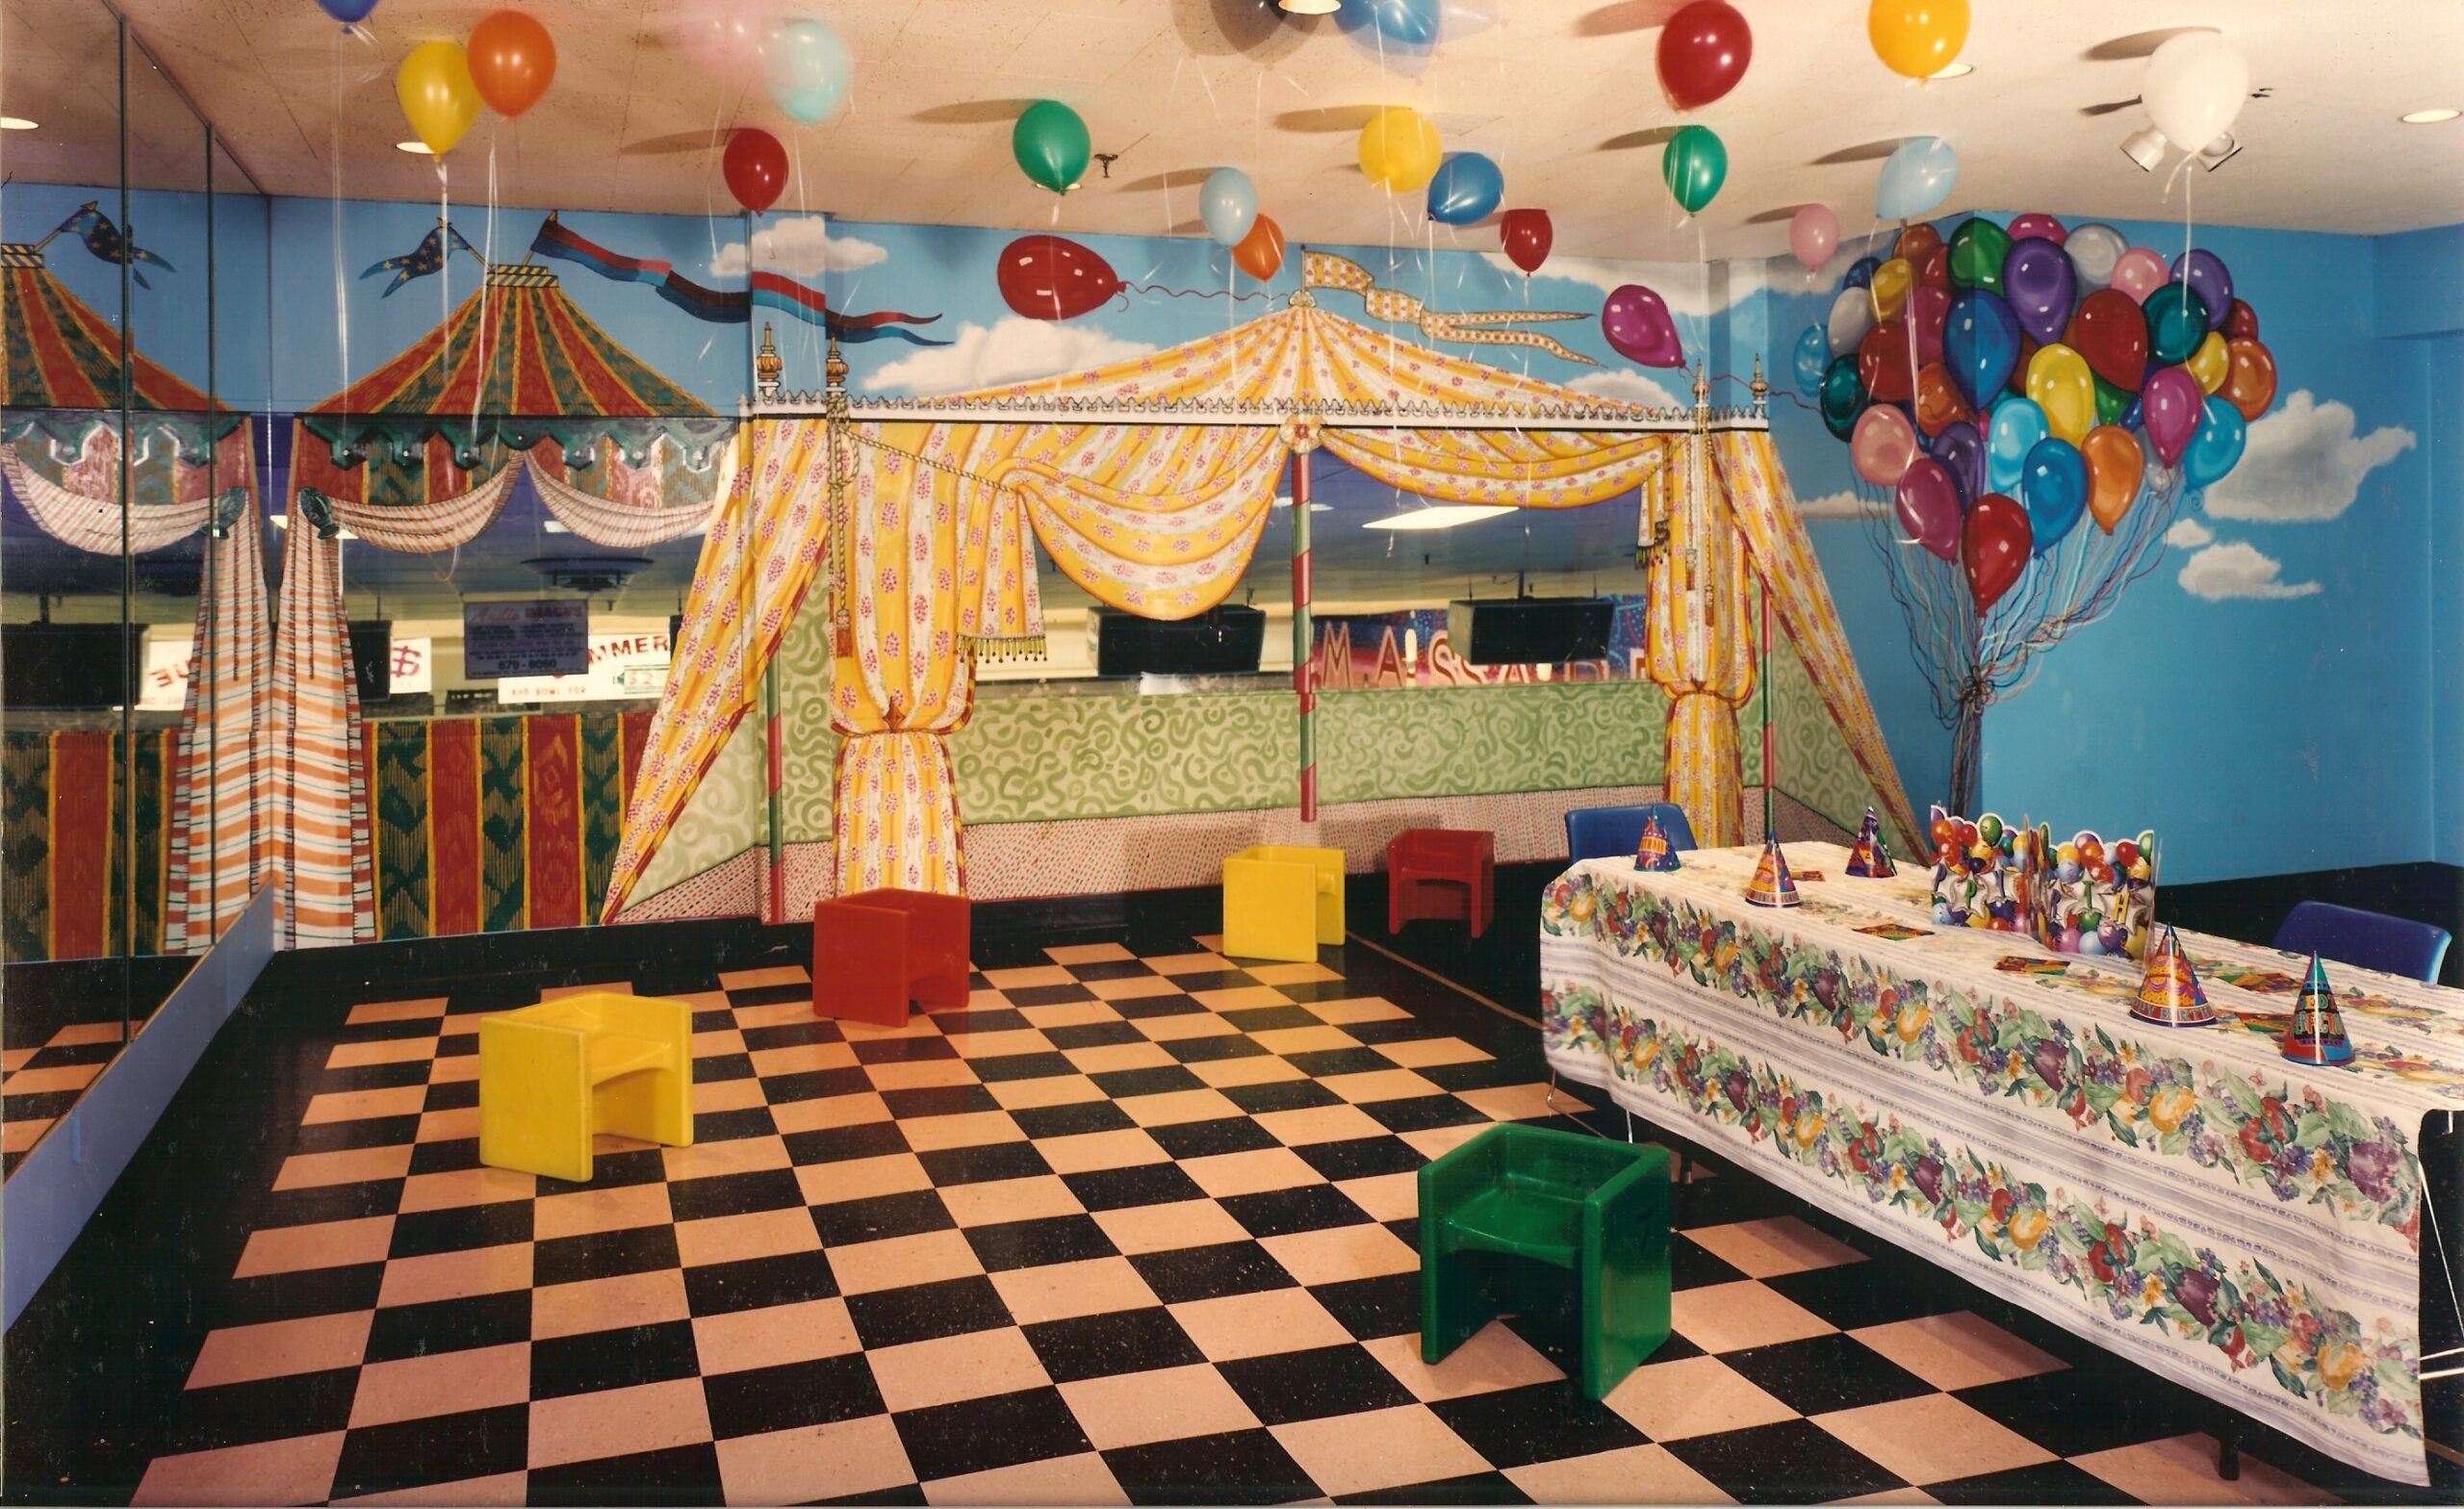 Birthday Party Room Rental Houston Image Inspiration of Cake and